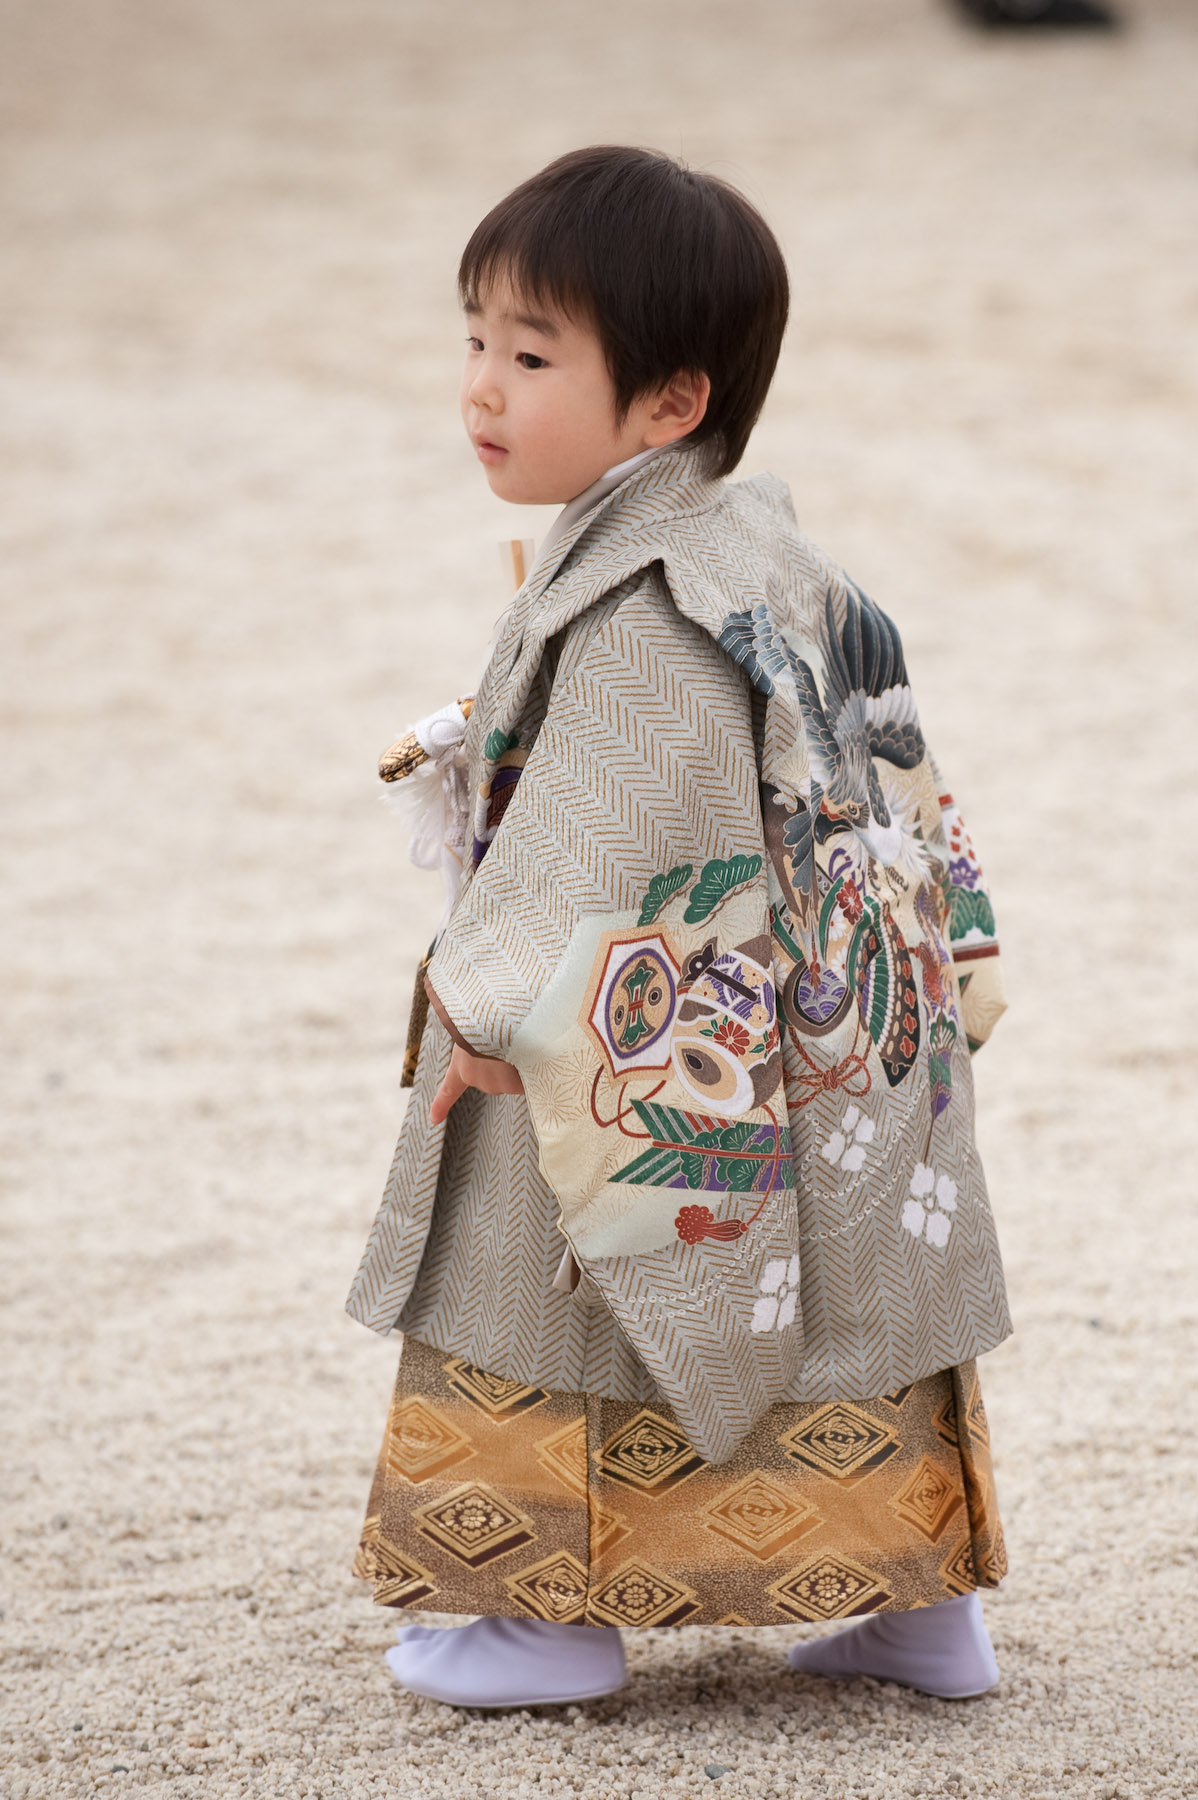 Cute Boys Pictures Album 8: Jeffrey Friedl's Blog » Kids In Kimono: Cute Enough To Eat